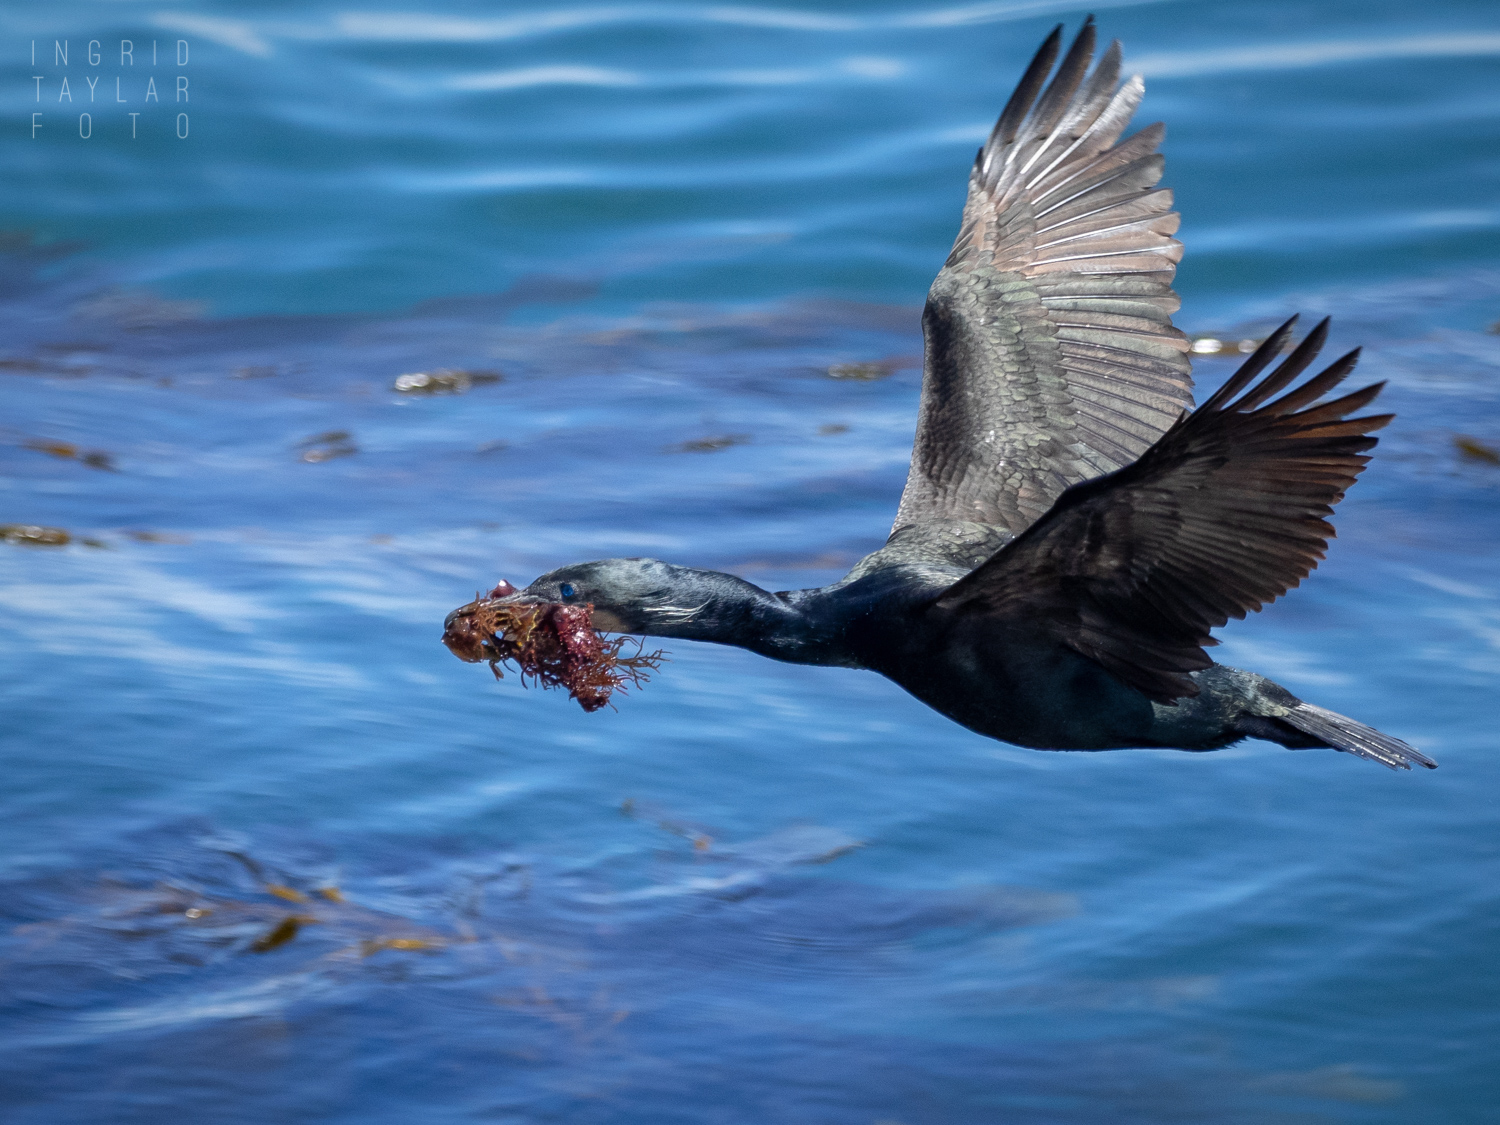 Brandt's Cormorant Flying with Seaweed Nesting Material